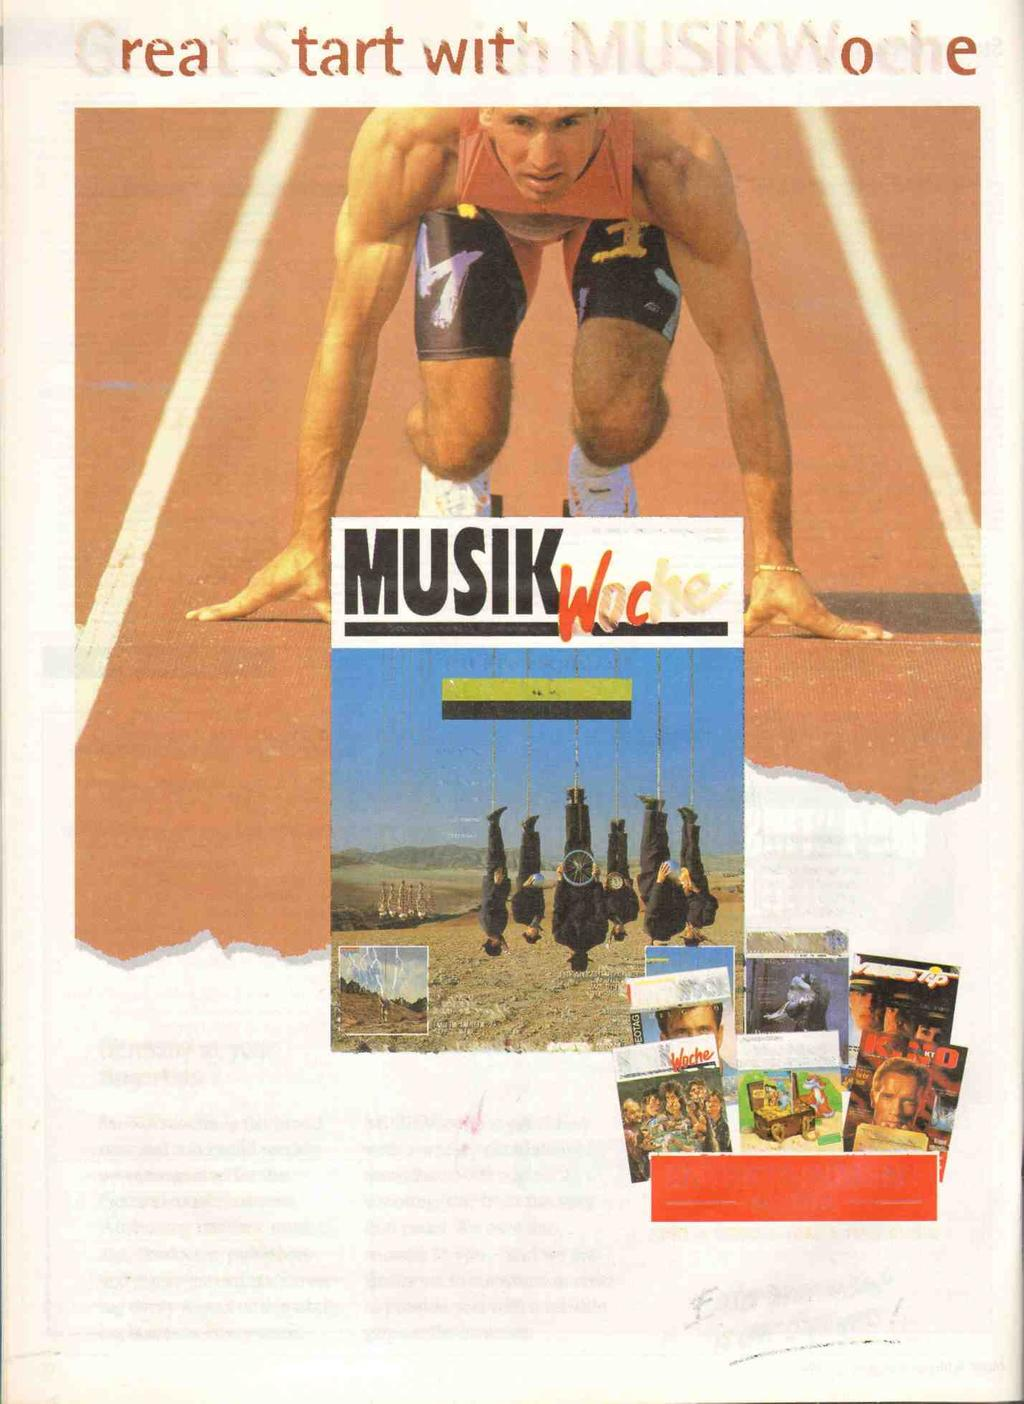 Great Start with MUSIKWoche la. Oktober 1993-I. Jahrgang - DM 6,- 7 C TH F. NEW ROJECT OF ENTERTAINMENT MEDIA VERLAG GmbH a co.